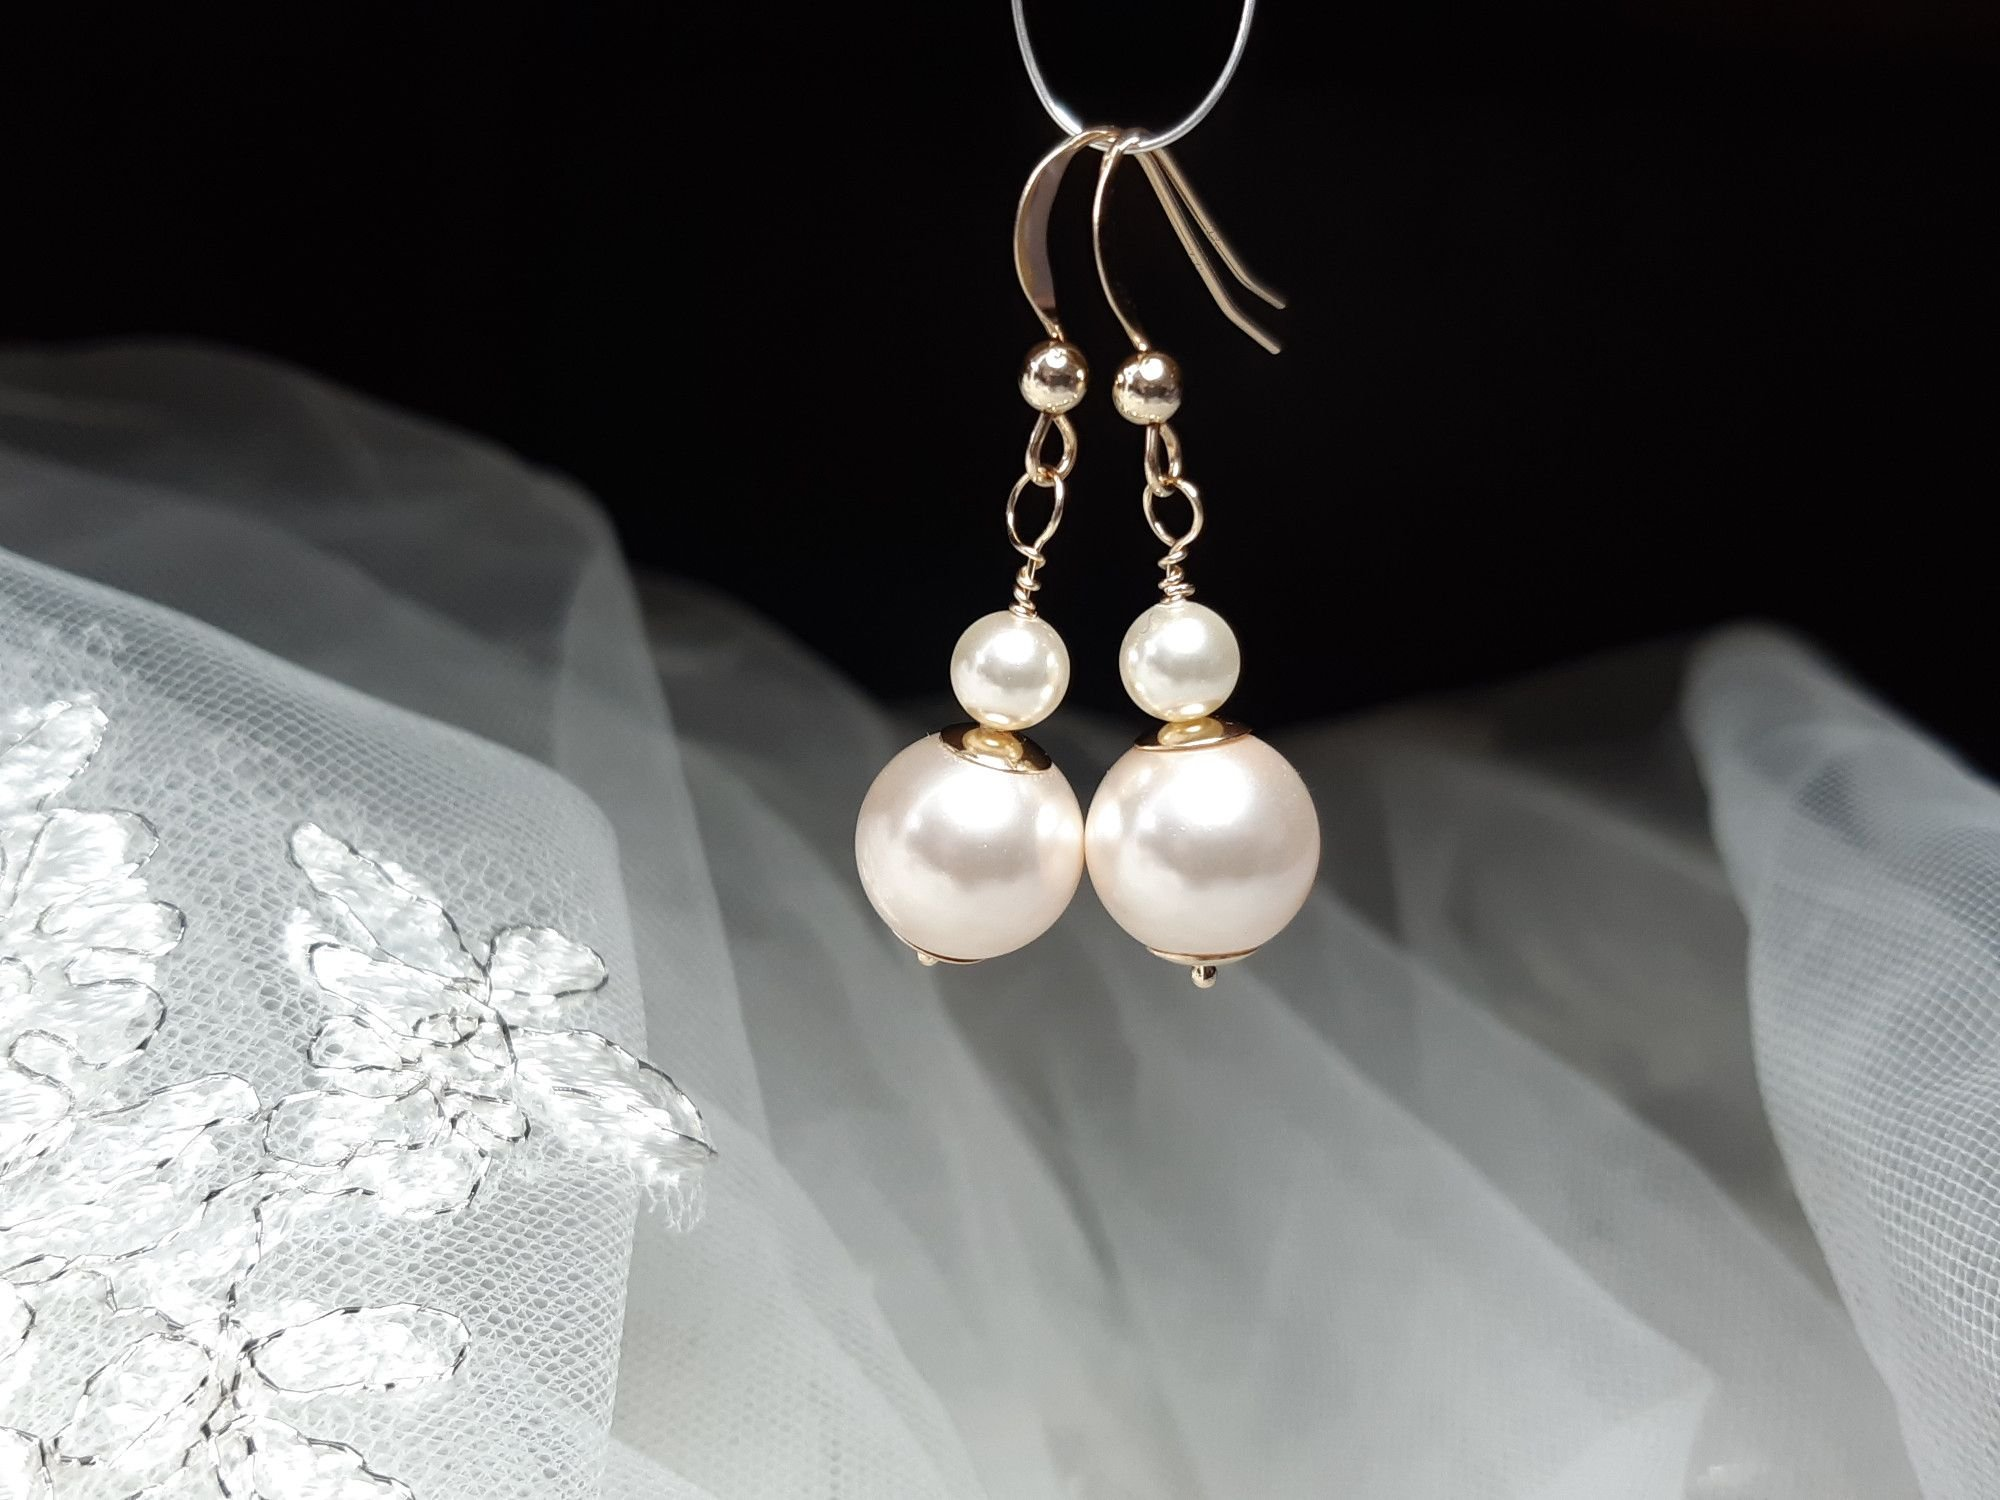 Occasion-bridal-wedding-earrings with 14K gold & pearls-1.jpg